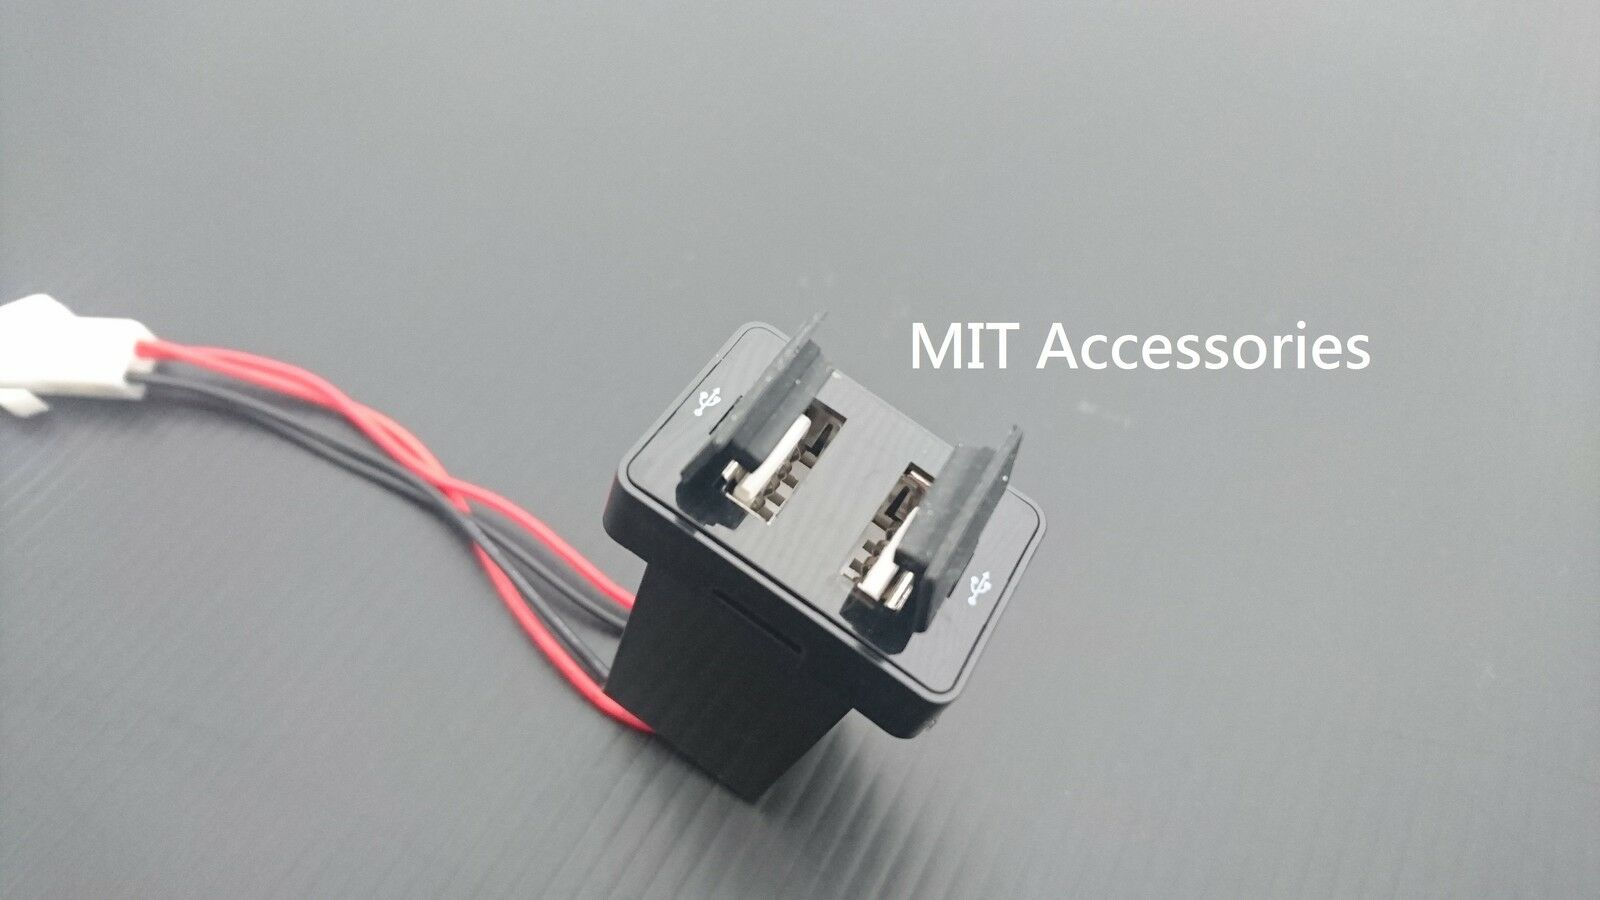 Details about MIT TOYOTA TACOMA 2008-16 Dual USB port 2 1A Power Adapter  charger smart phone